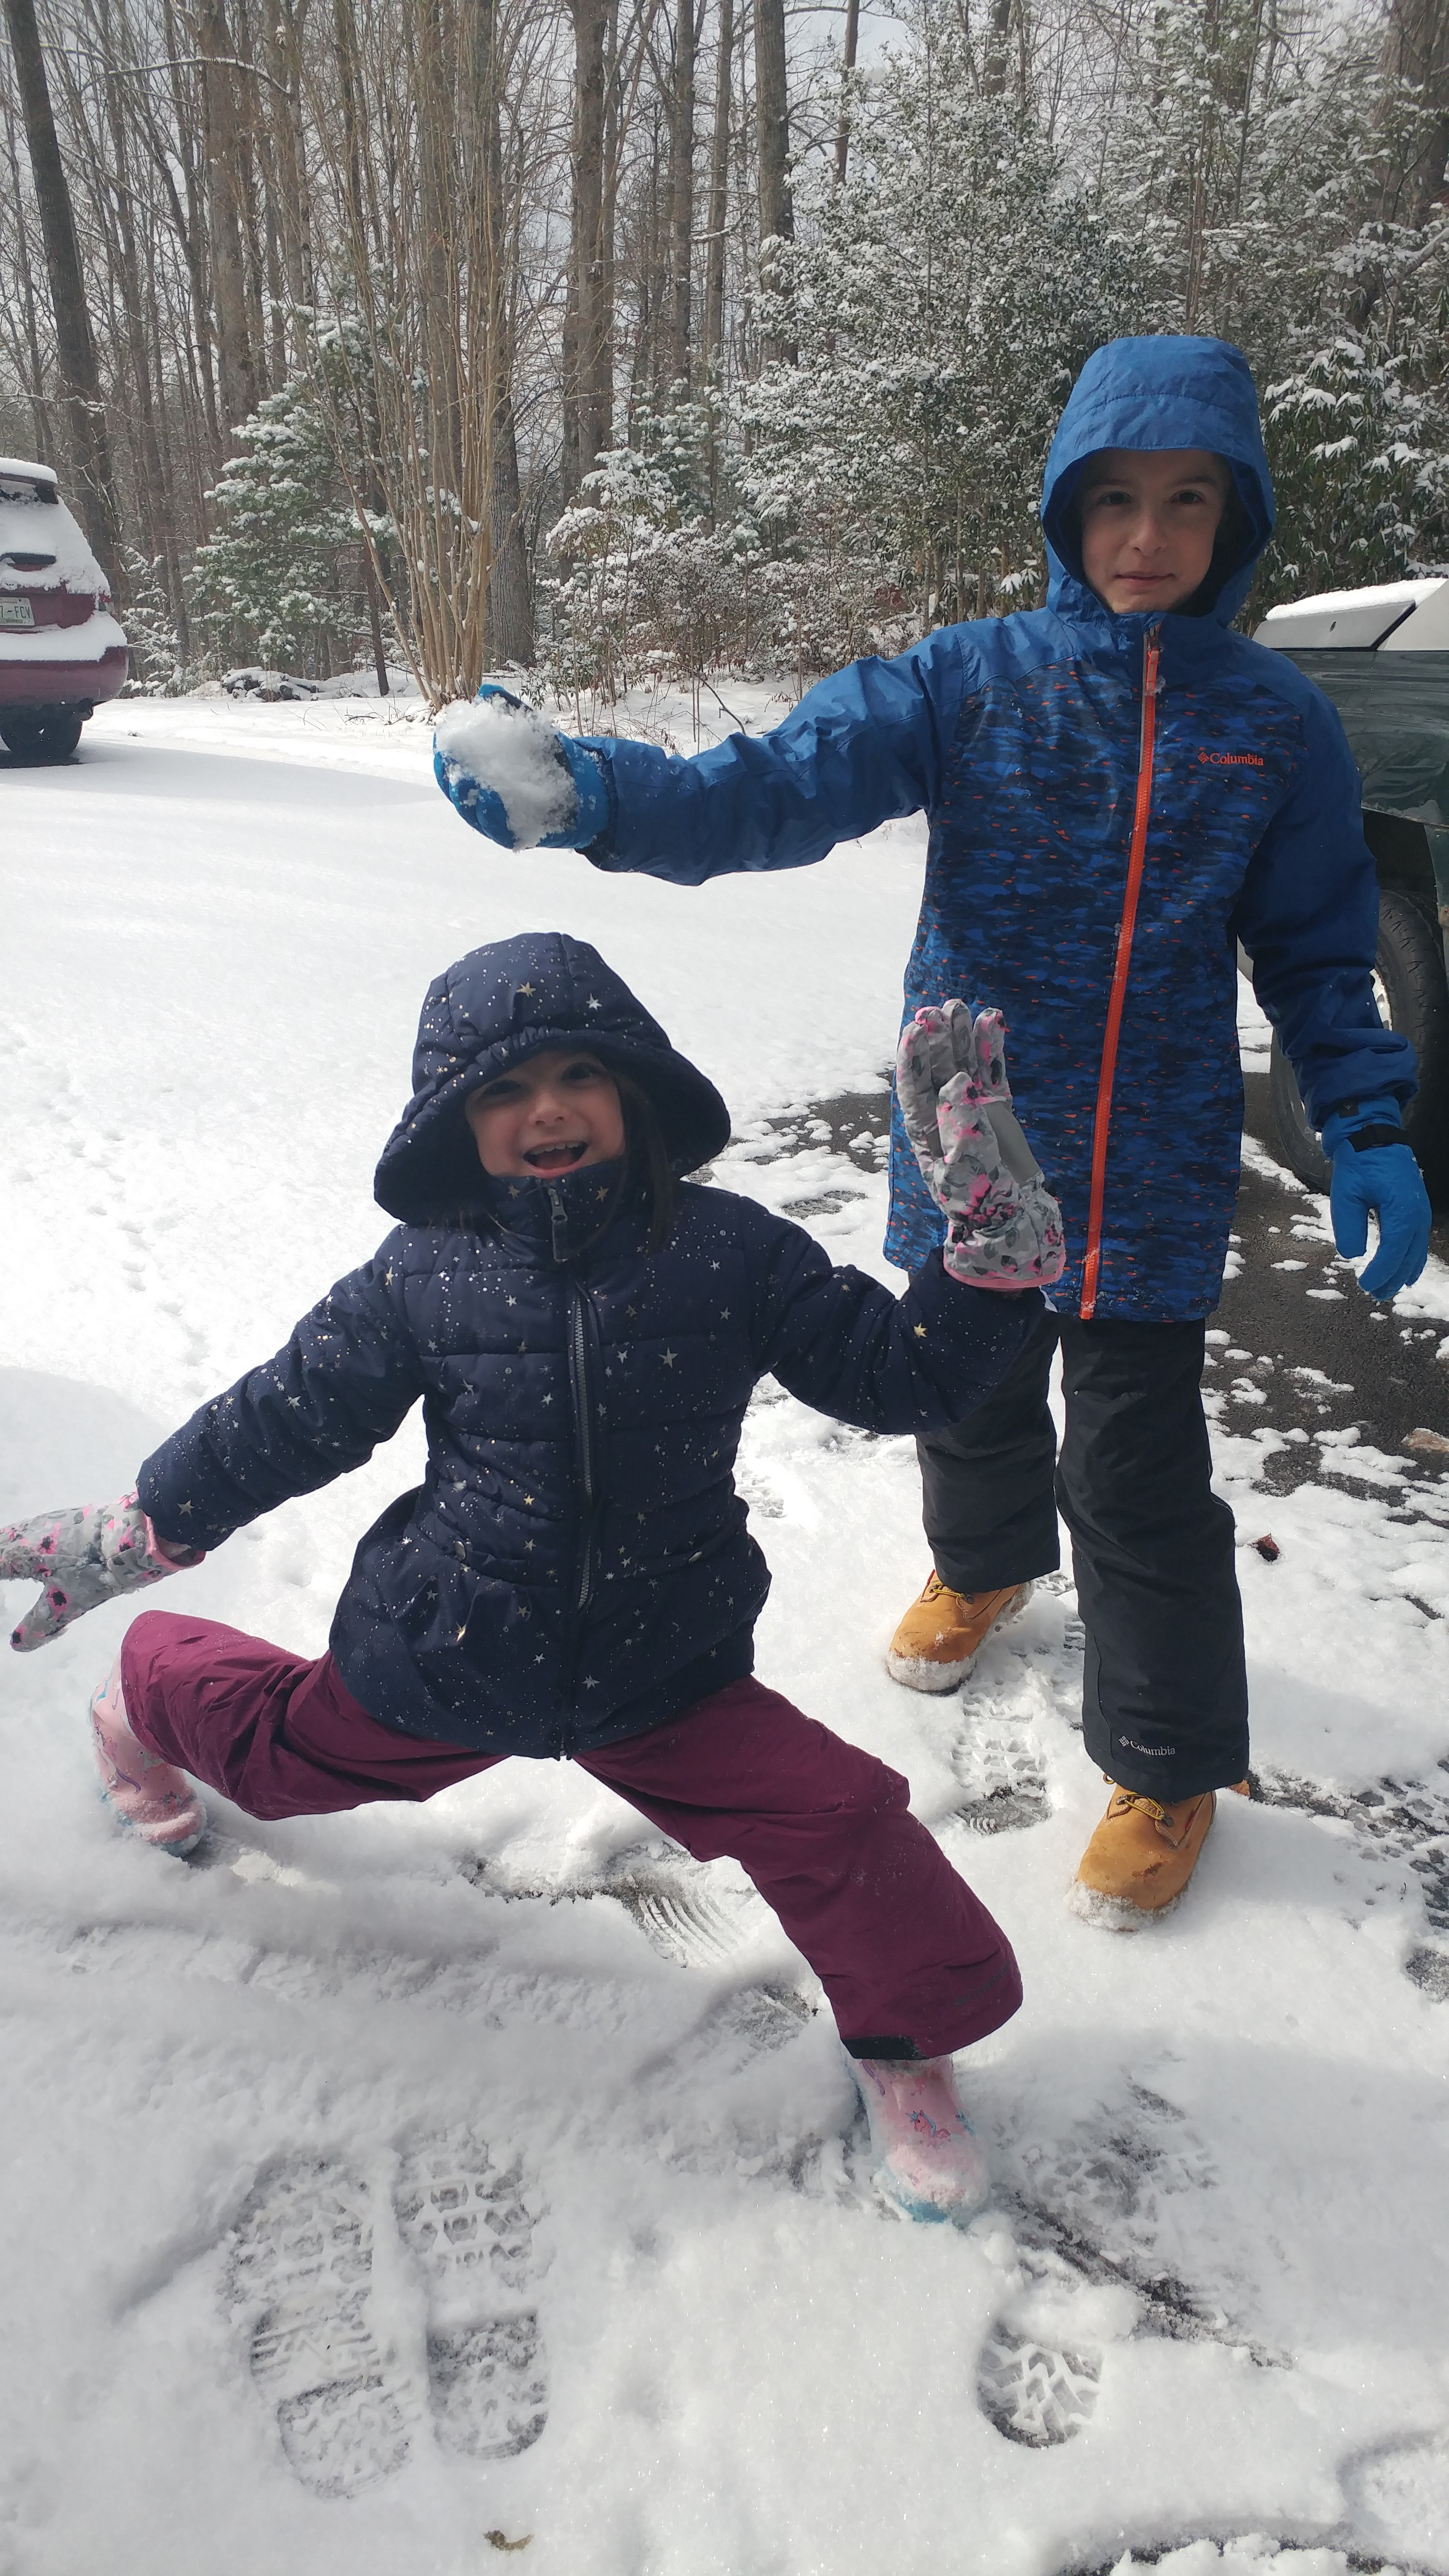 Boy and girl playing in the snow